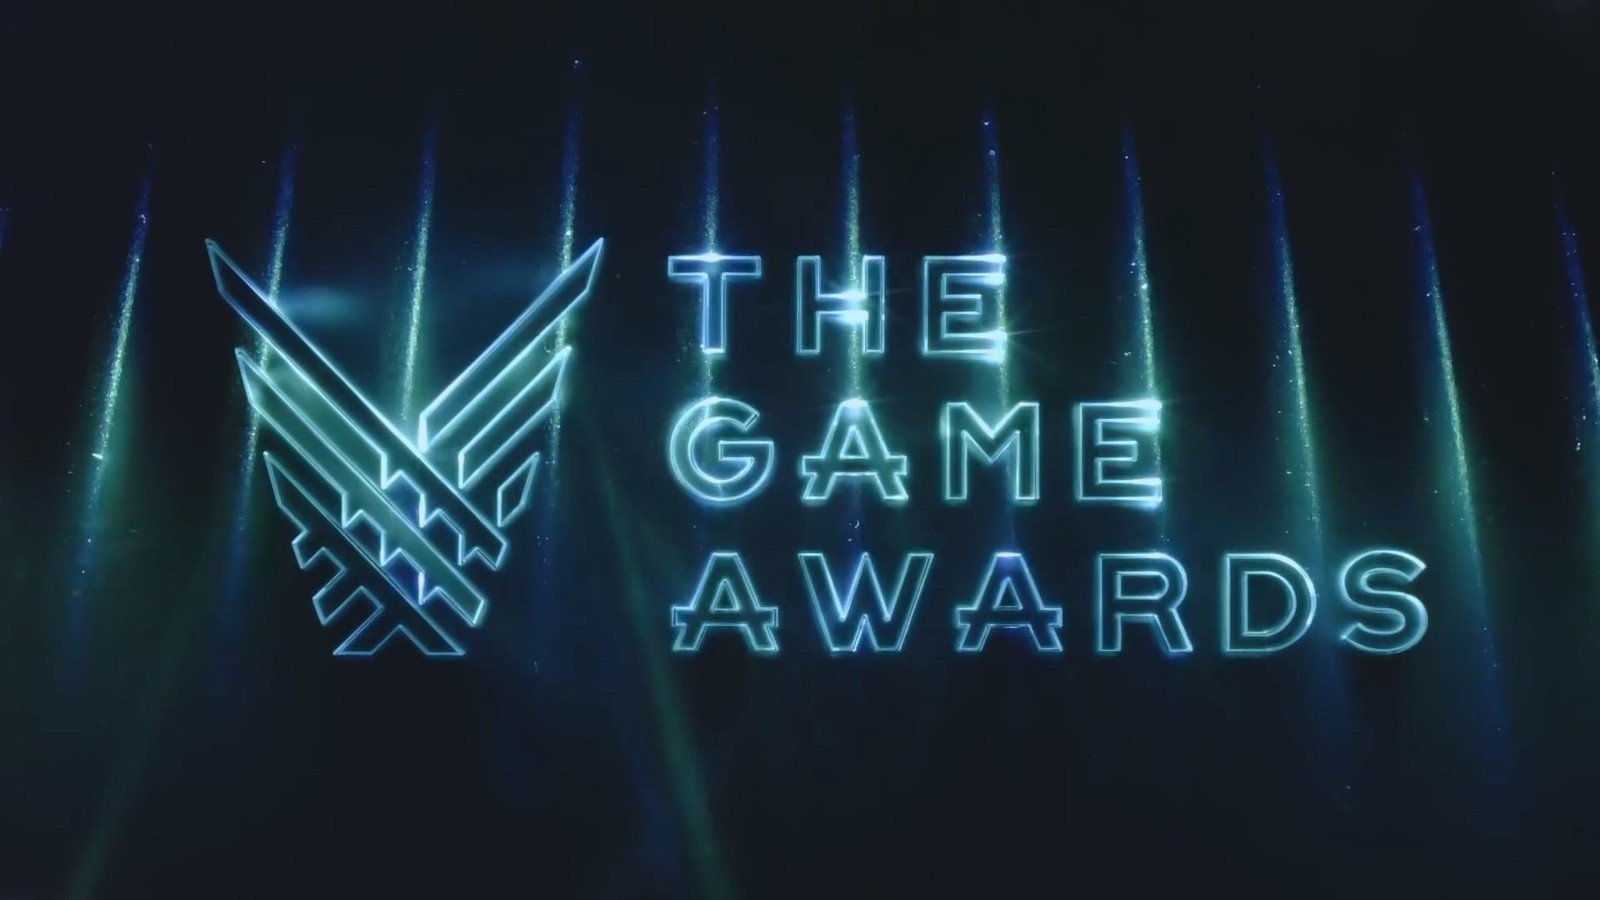 The 2018 The Game Awards won an amazing audience.